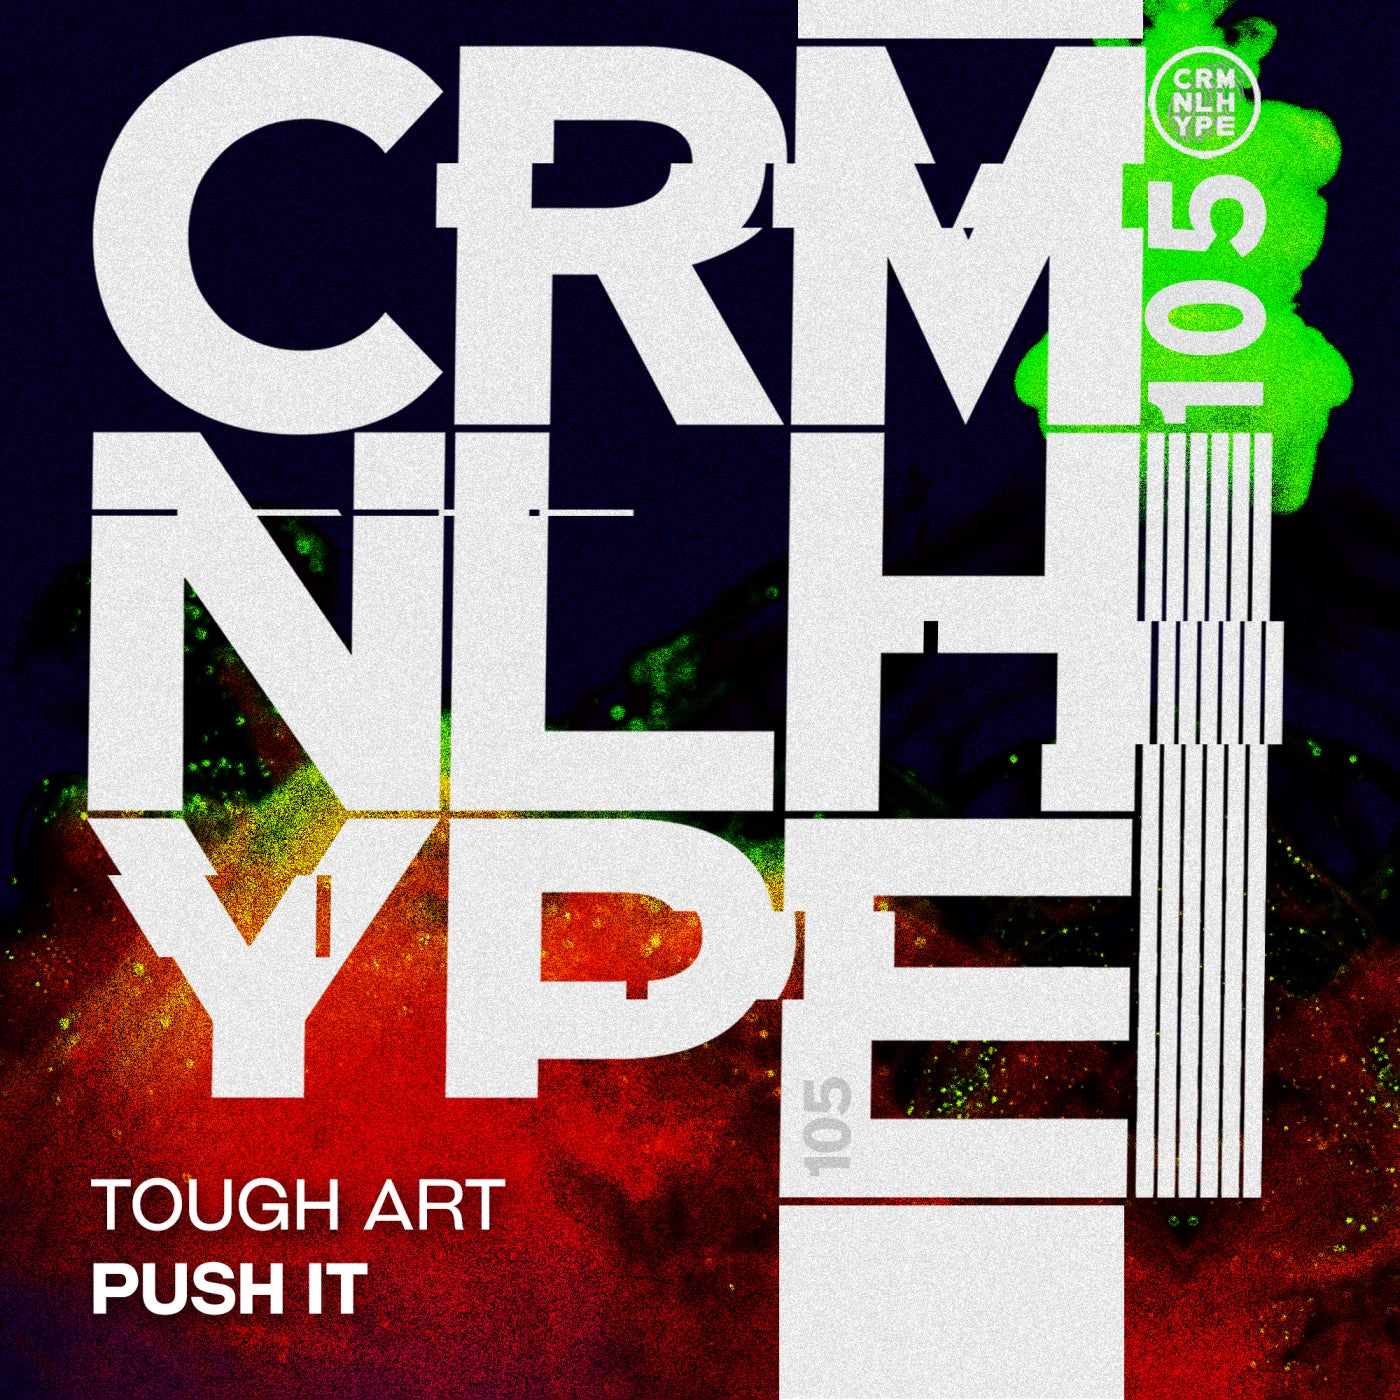 Download Push It on Electrobuzz